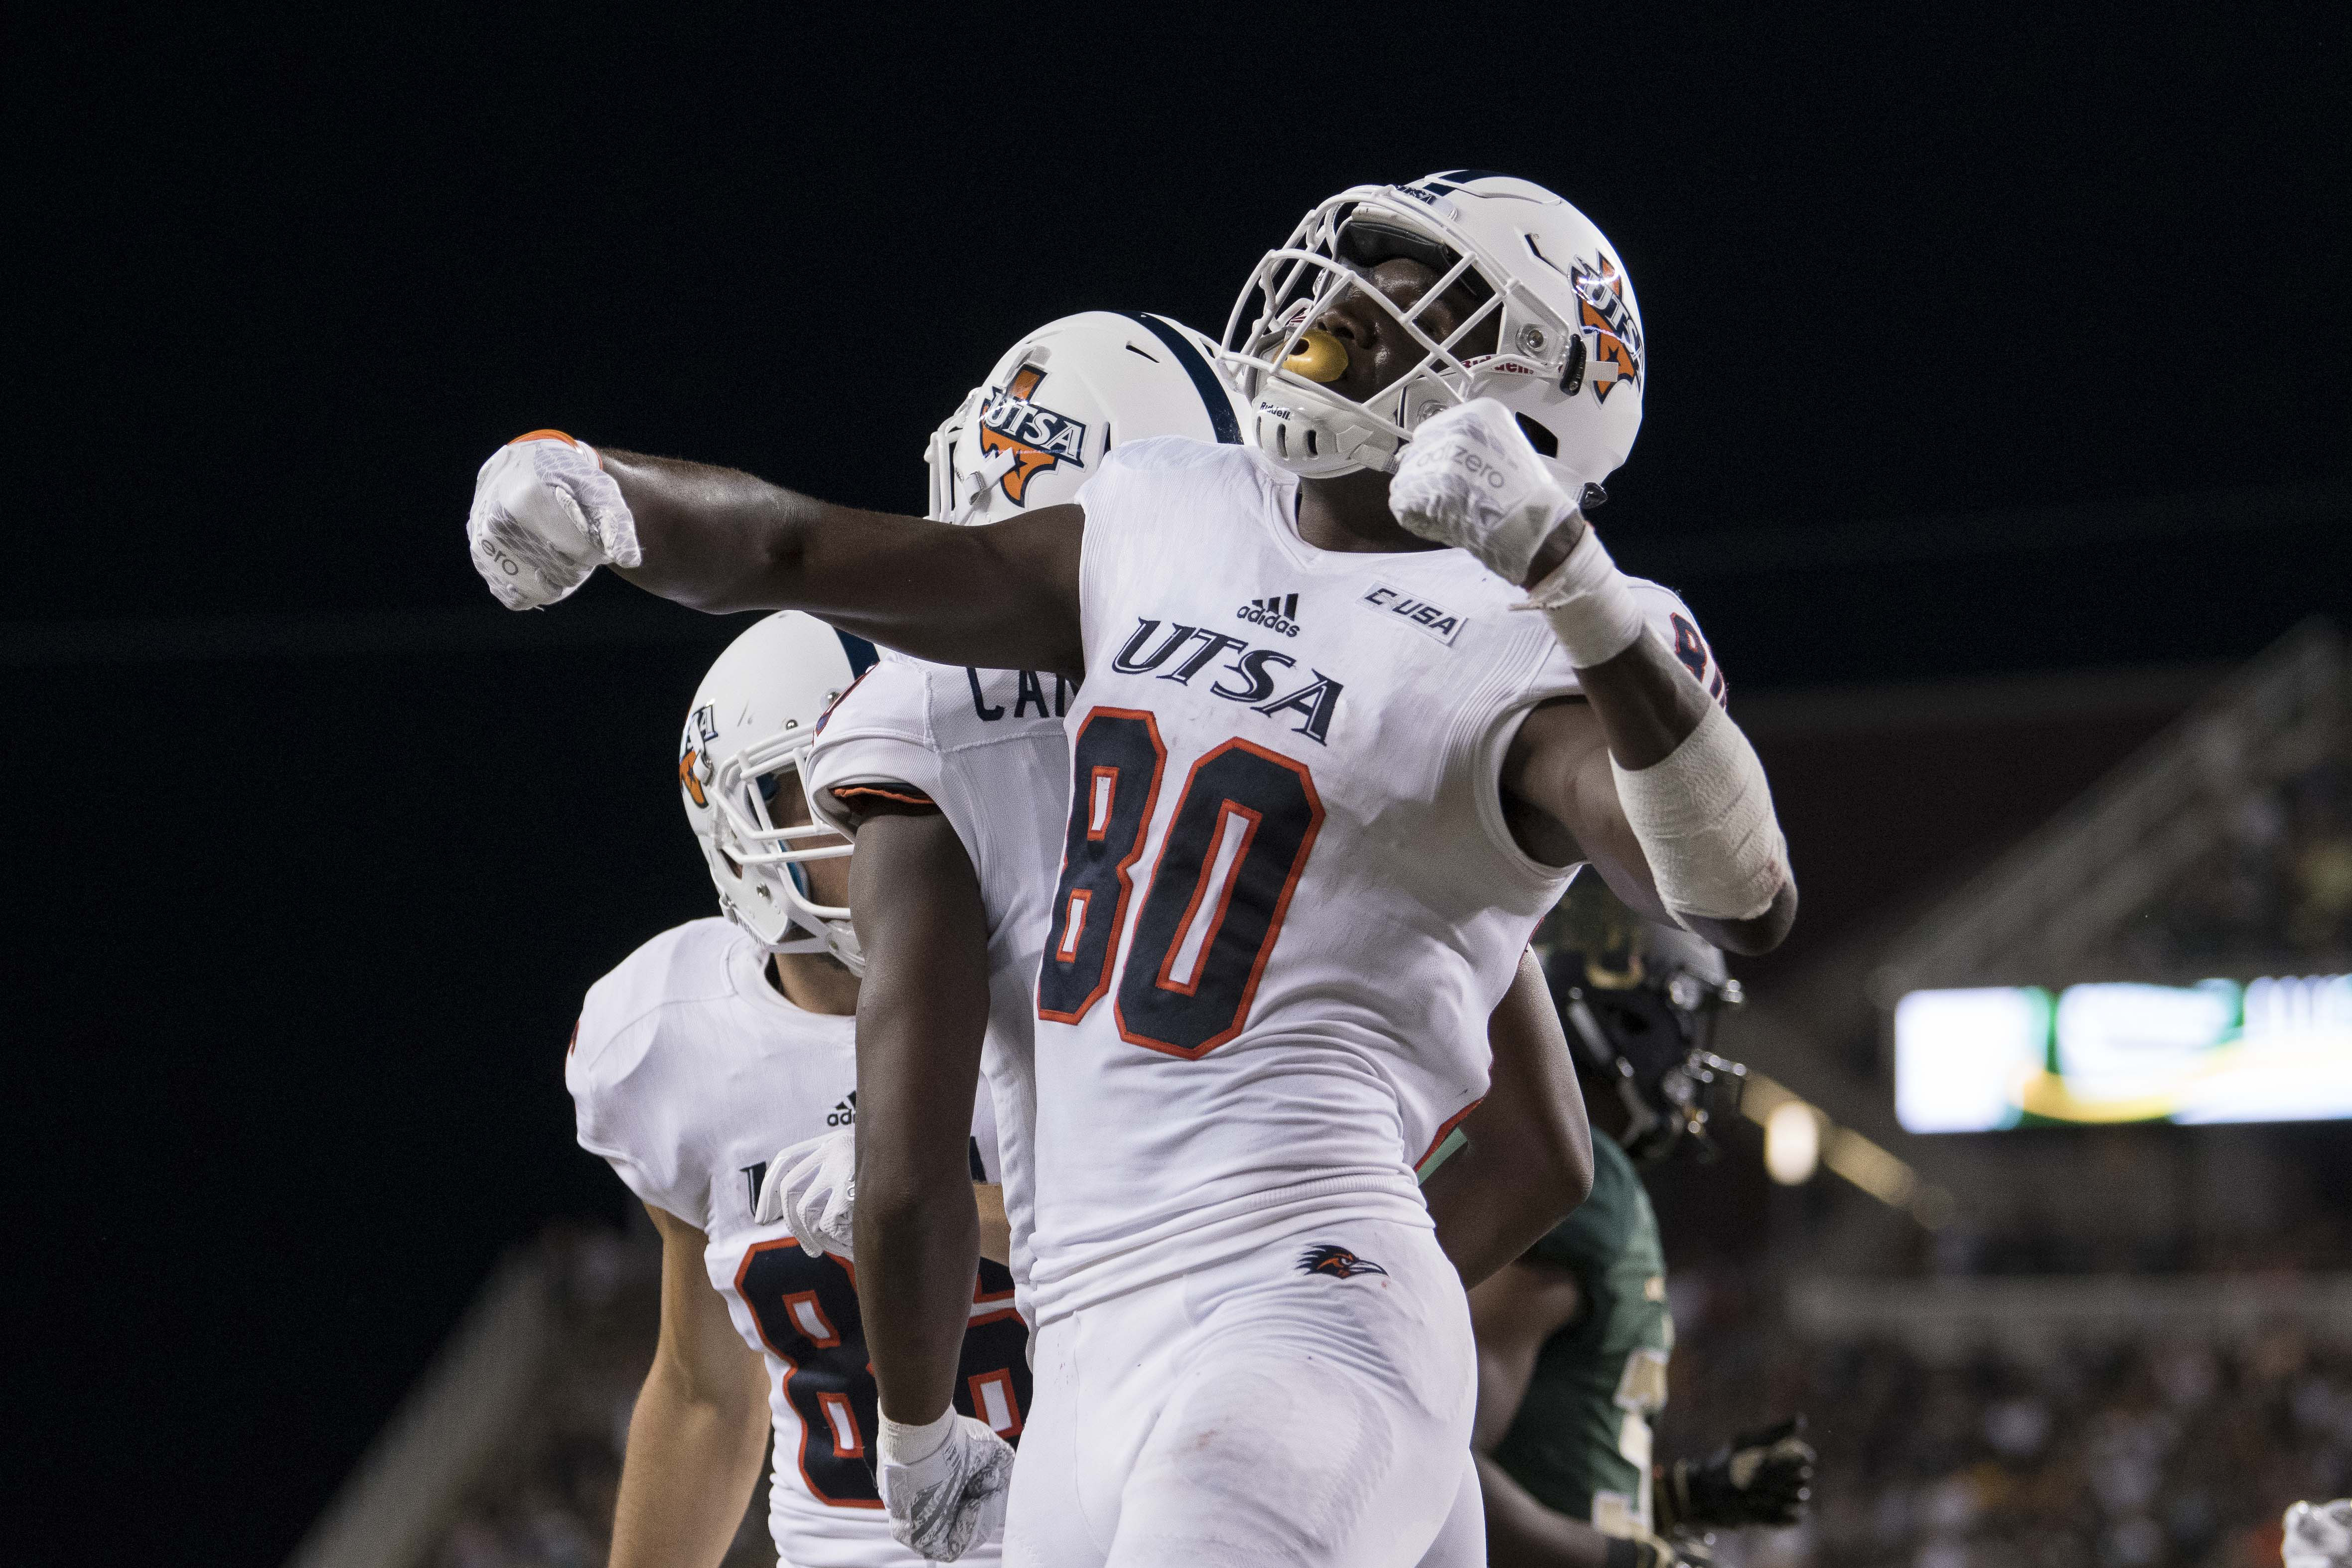 Southern Miss seeks to right their wrongs against the undefeated UTSA Roadrunners